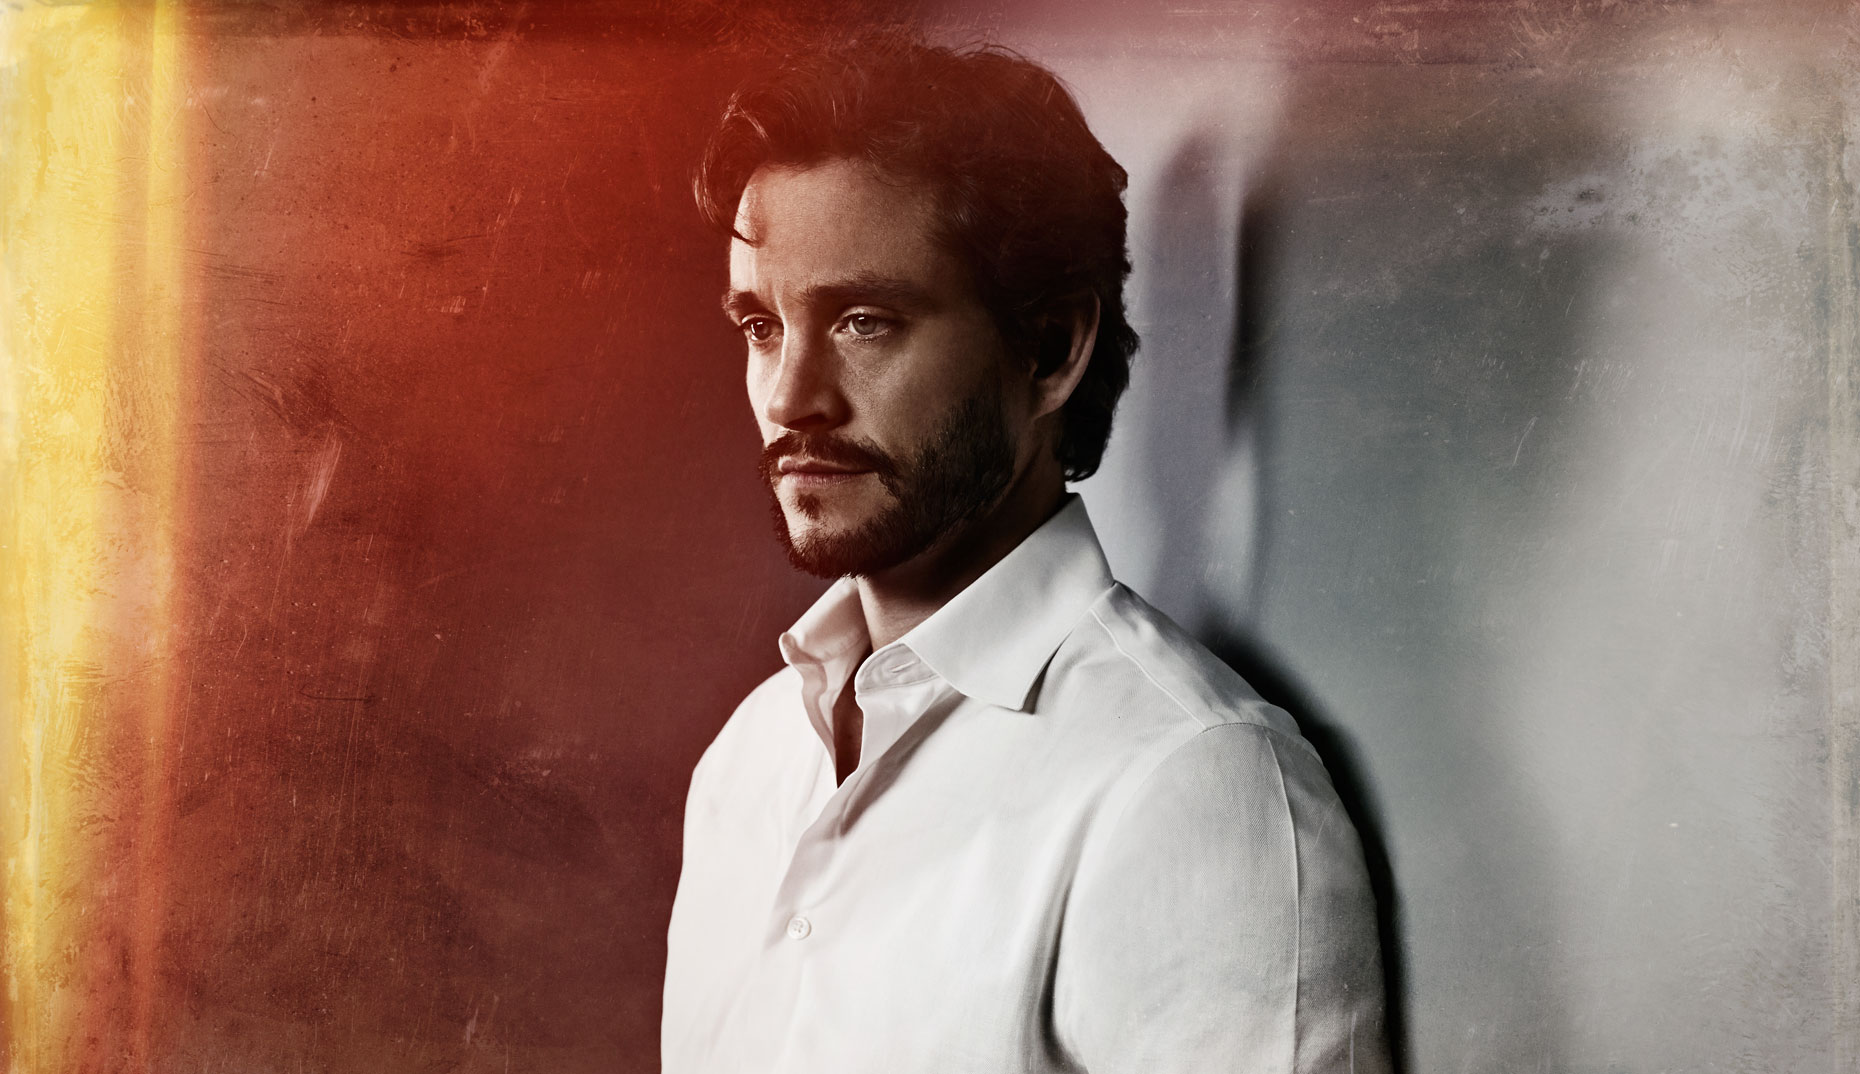 SAGF_Hugh_Dancy28701_v2web.jpg